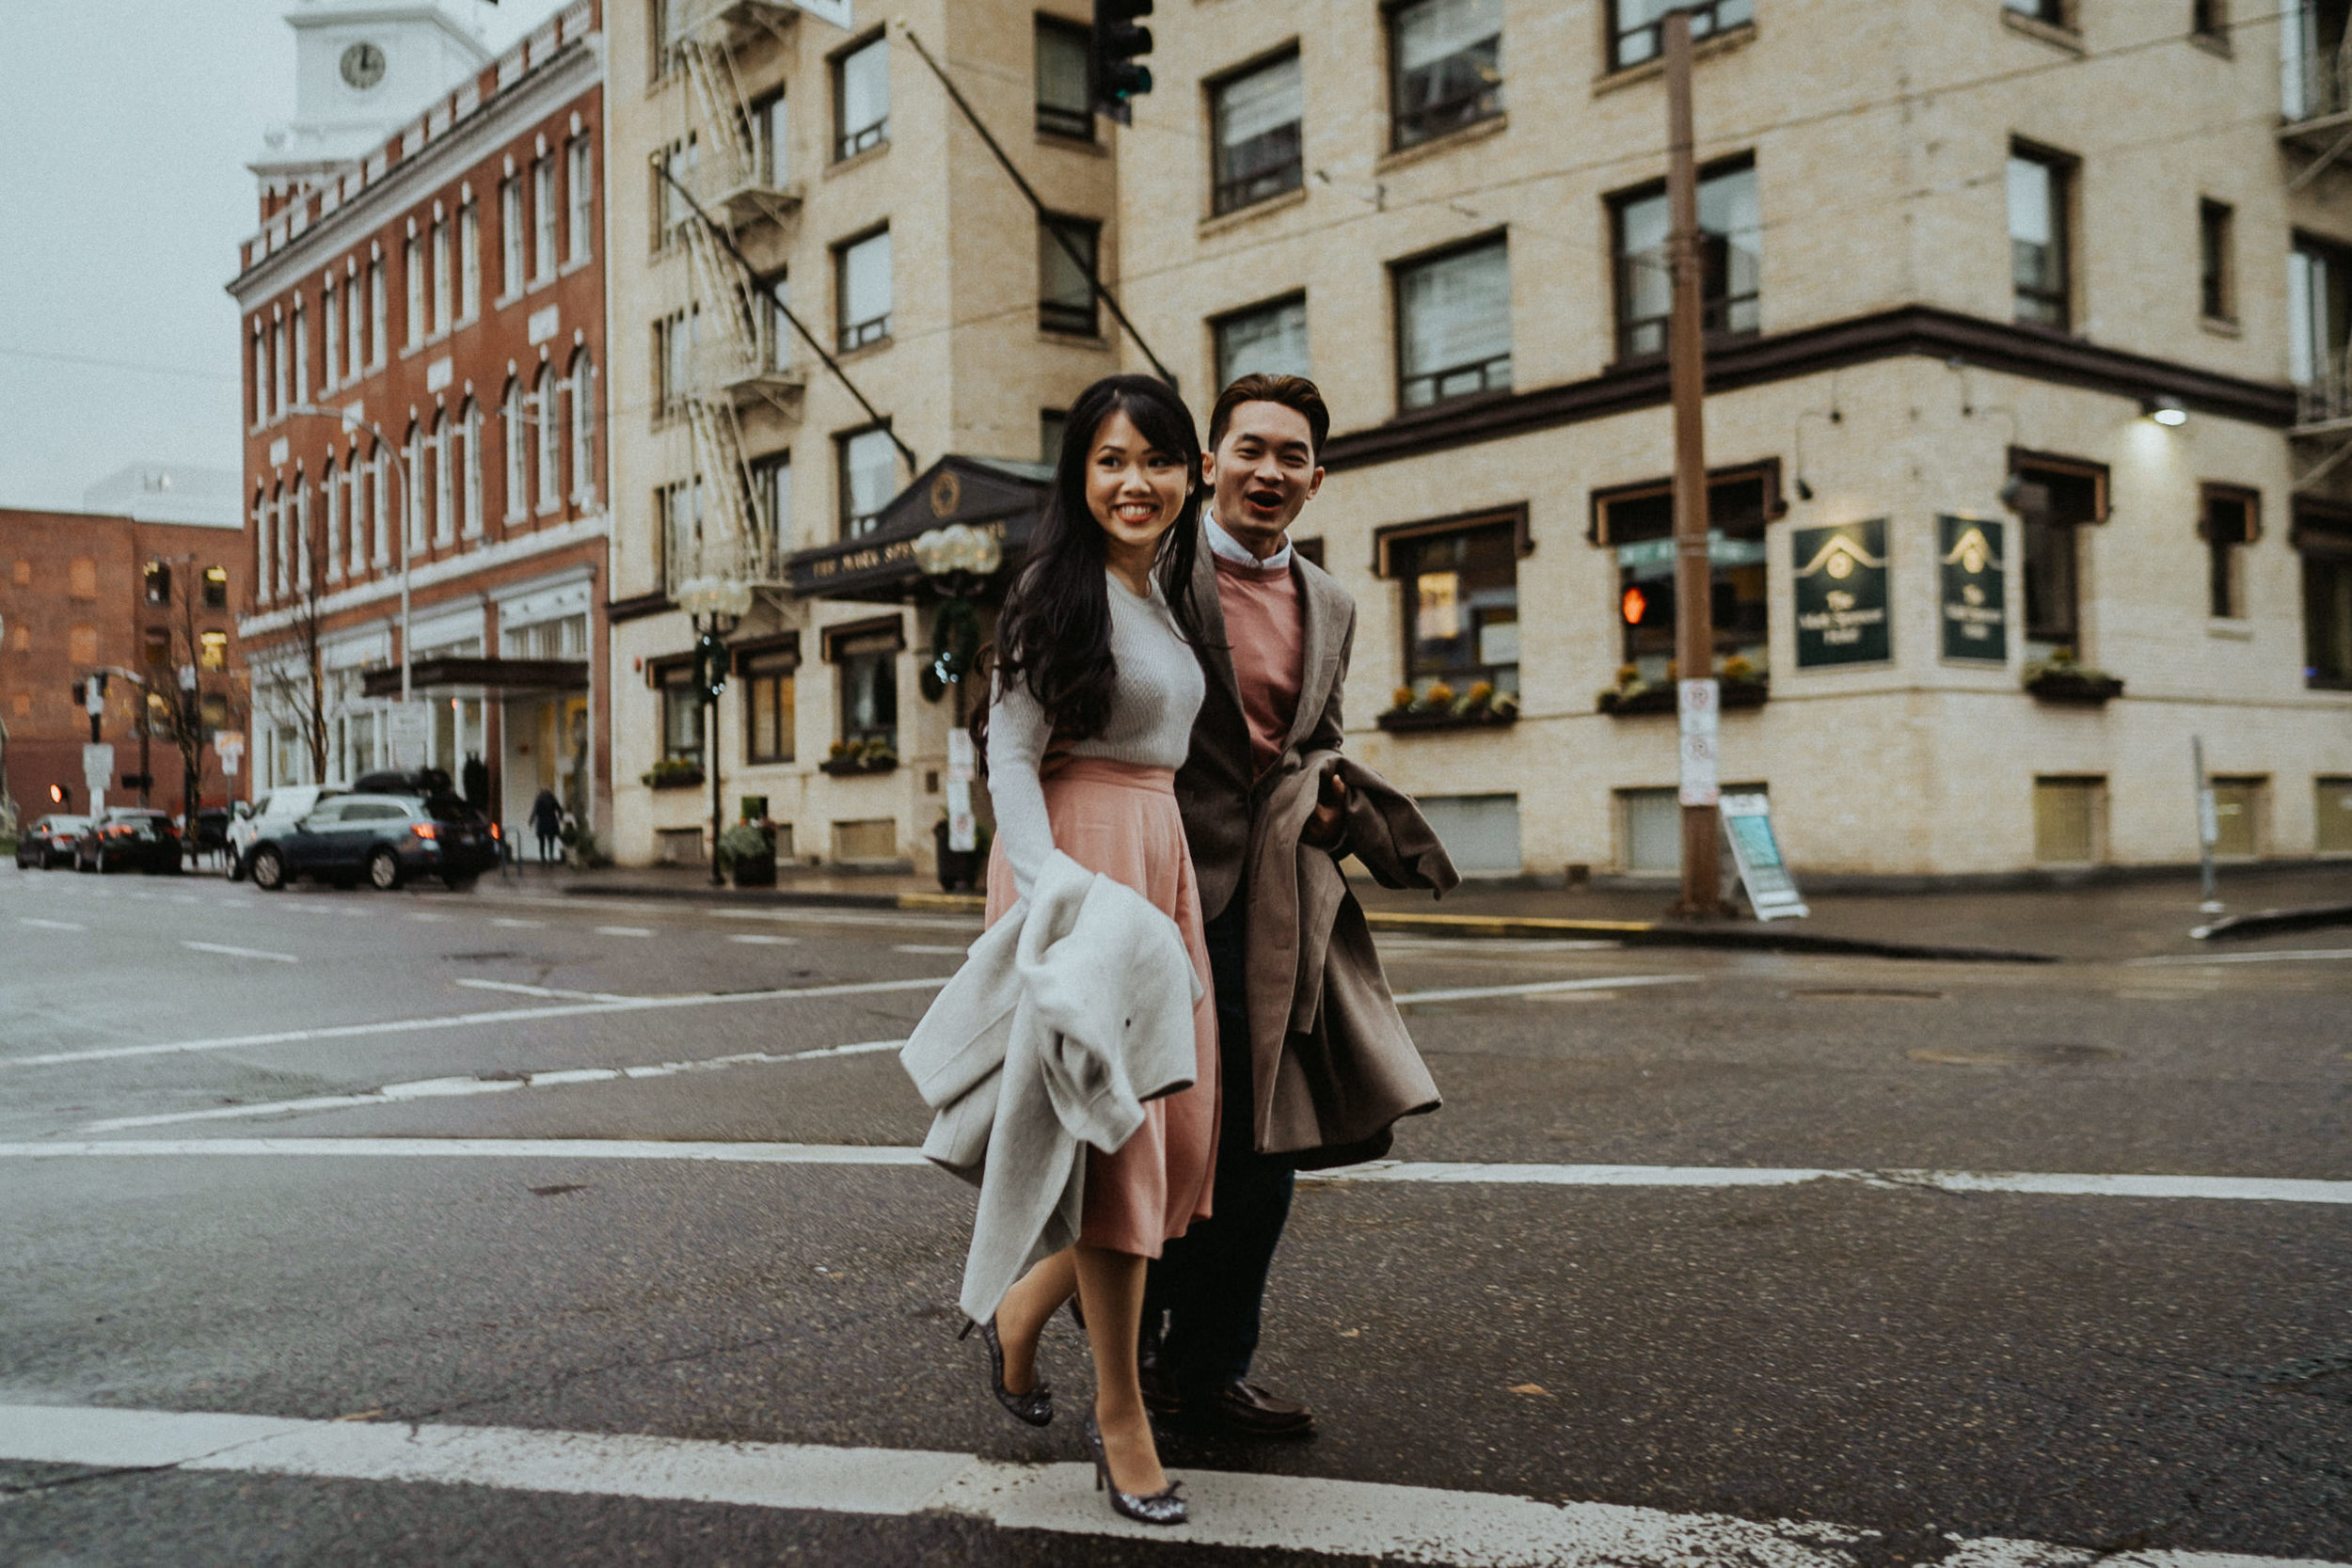 street fashion engagement photography